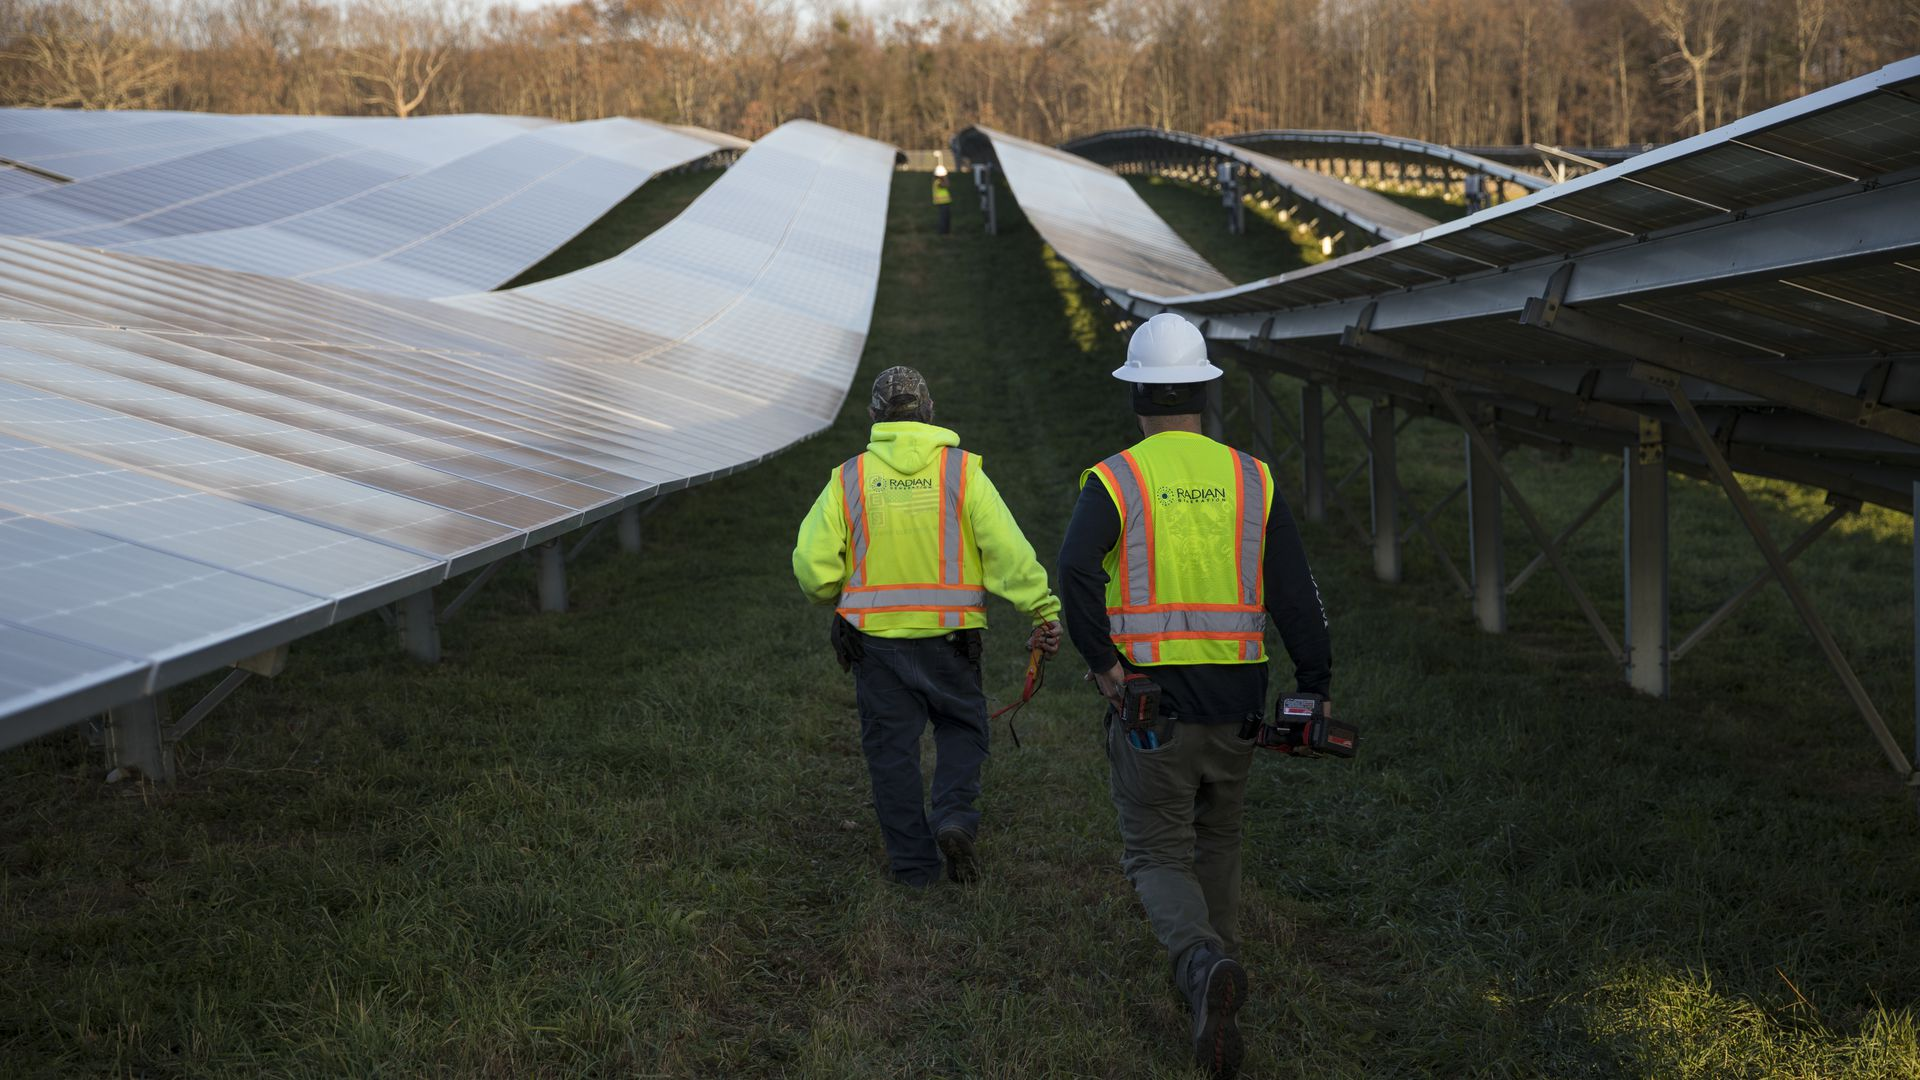 Employees from a Radian Generation's operations and maintenance team change out a faulty solar inverter along a row of solar panels